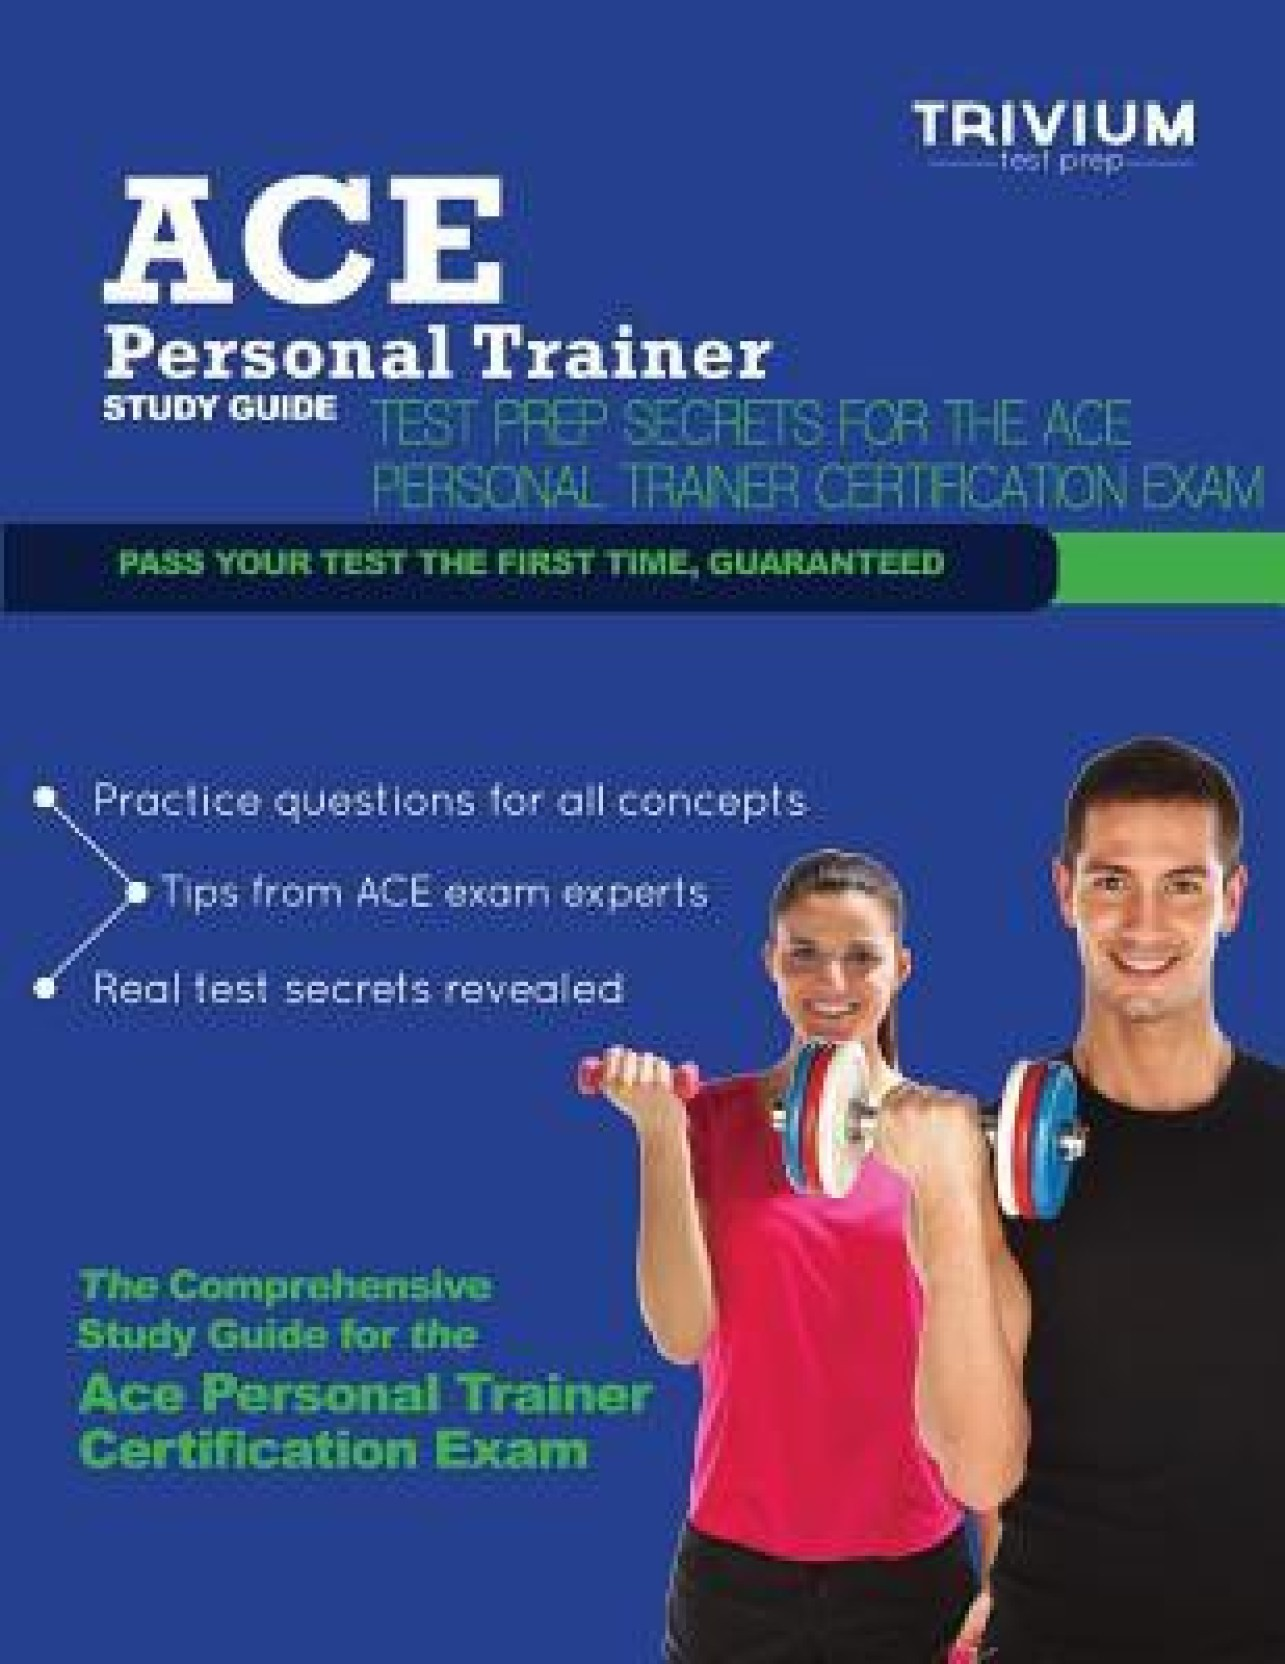 Ace Personal Trainer Study Guide: Test Prep Secrets for the Ace Personal  Trainer Certification Exam (English, Paperback, Trivium Test Prep)